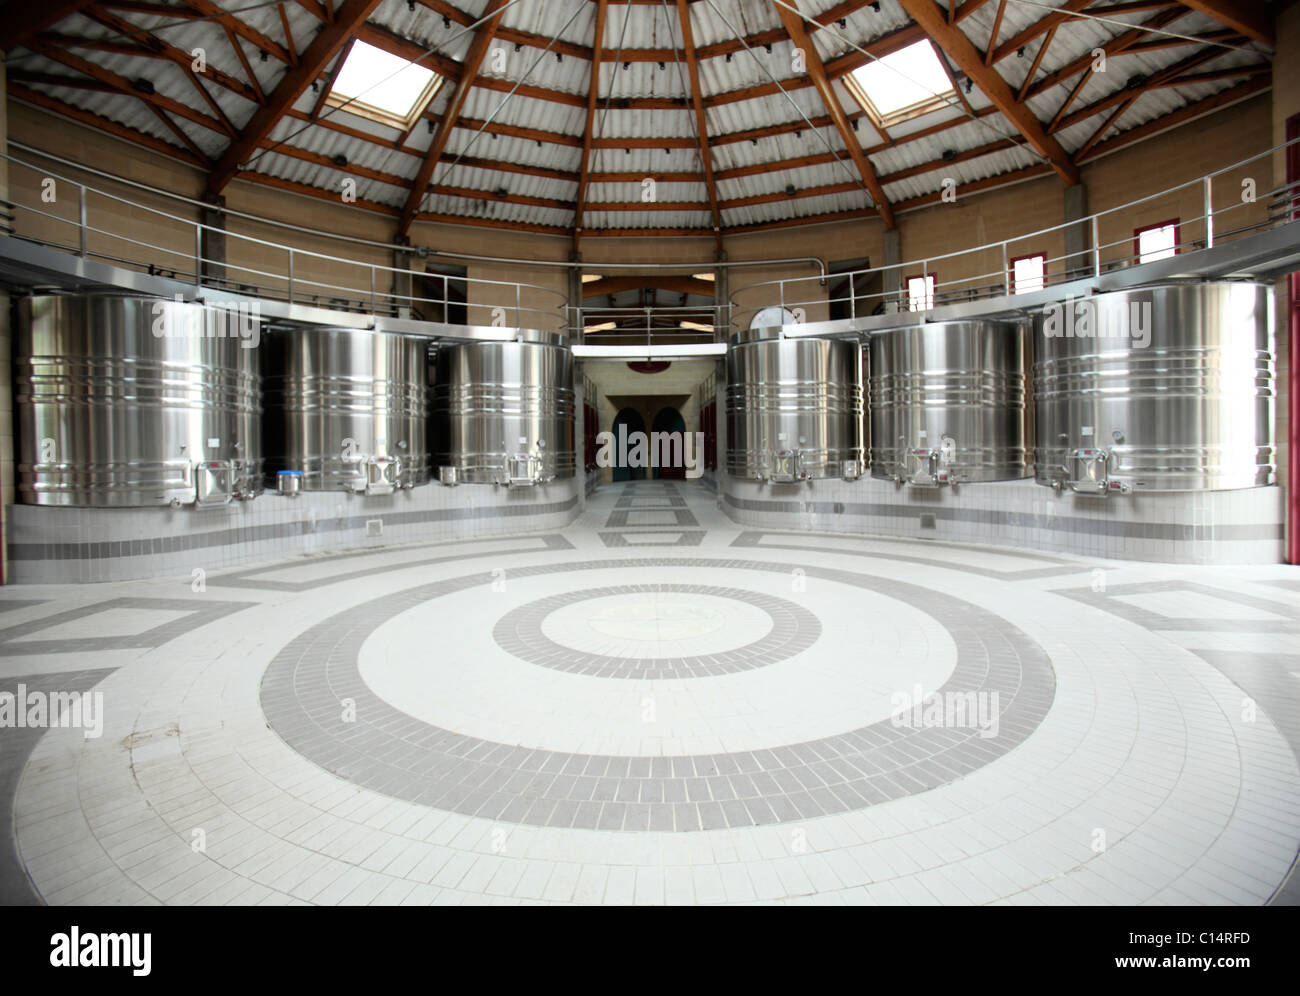 Winemaking facility in Bordeaux - Stock Image